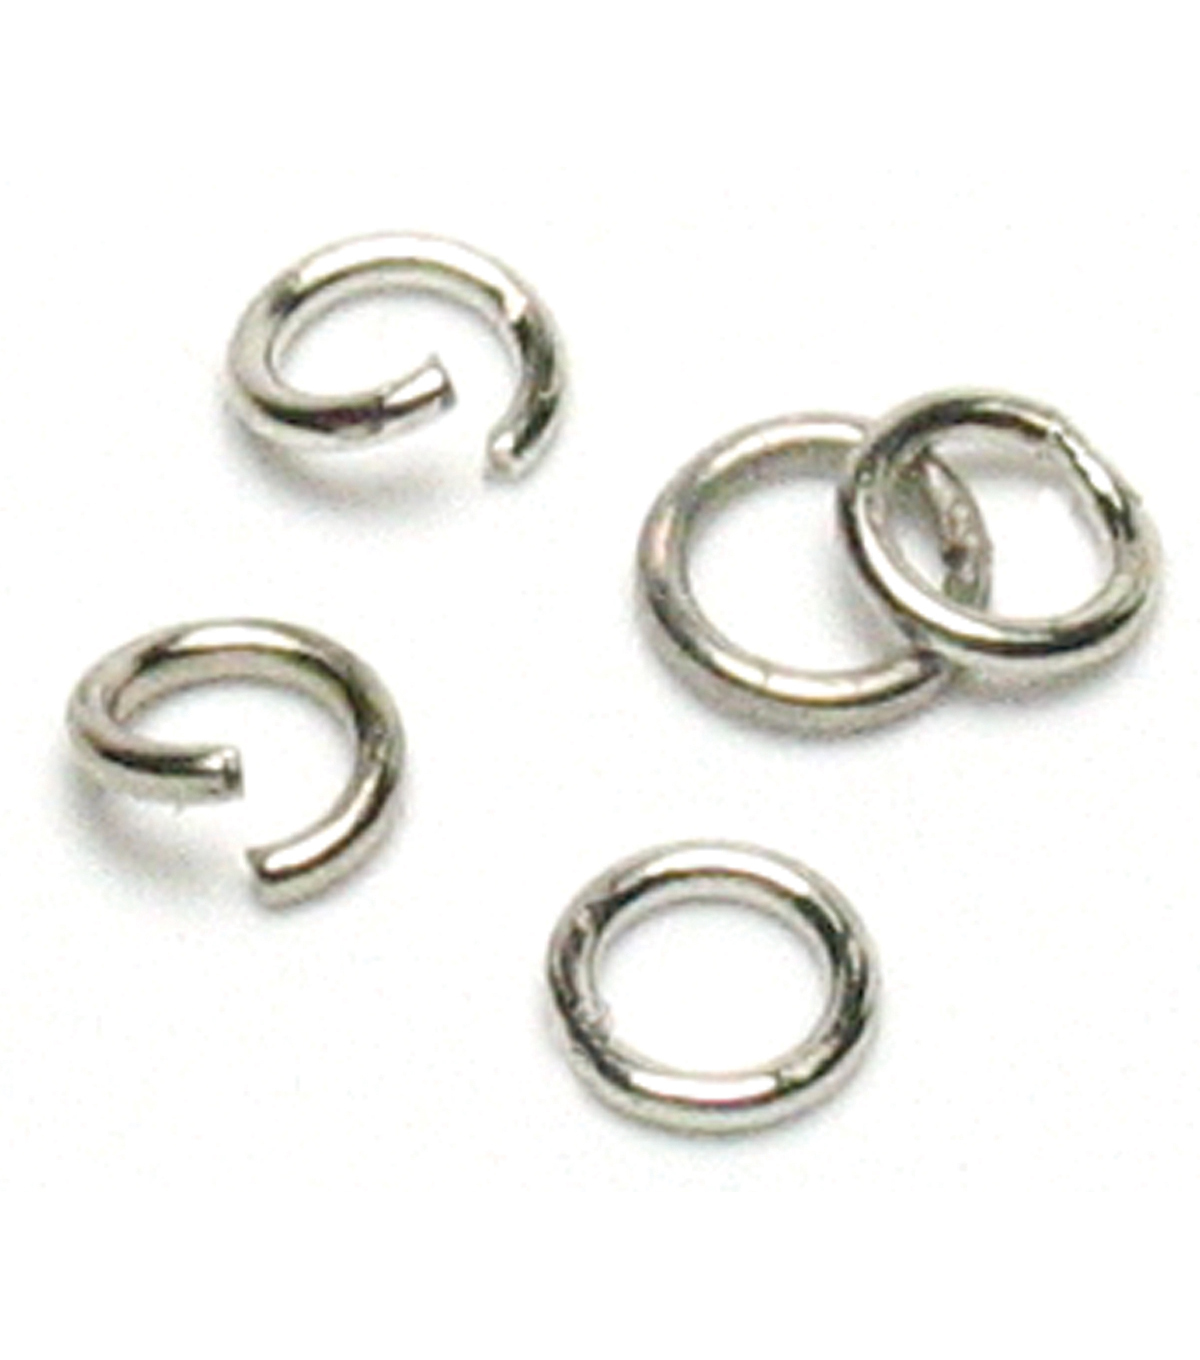 Jewelry Basics Open/Close Jump Rings 4mm 500/Pk-Silver